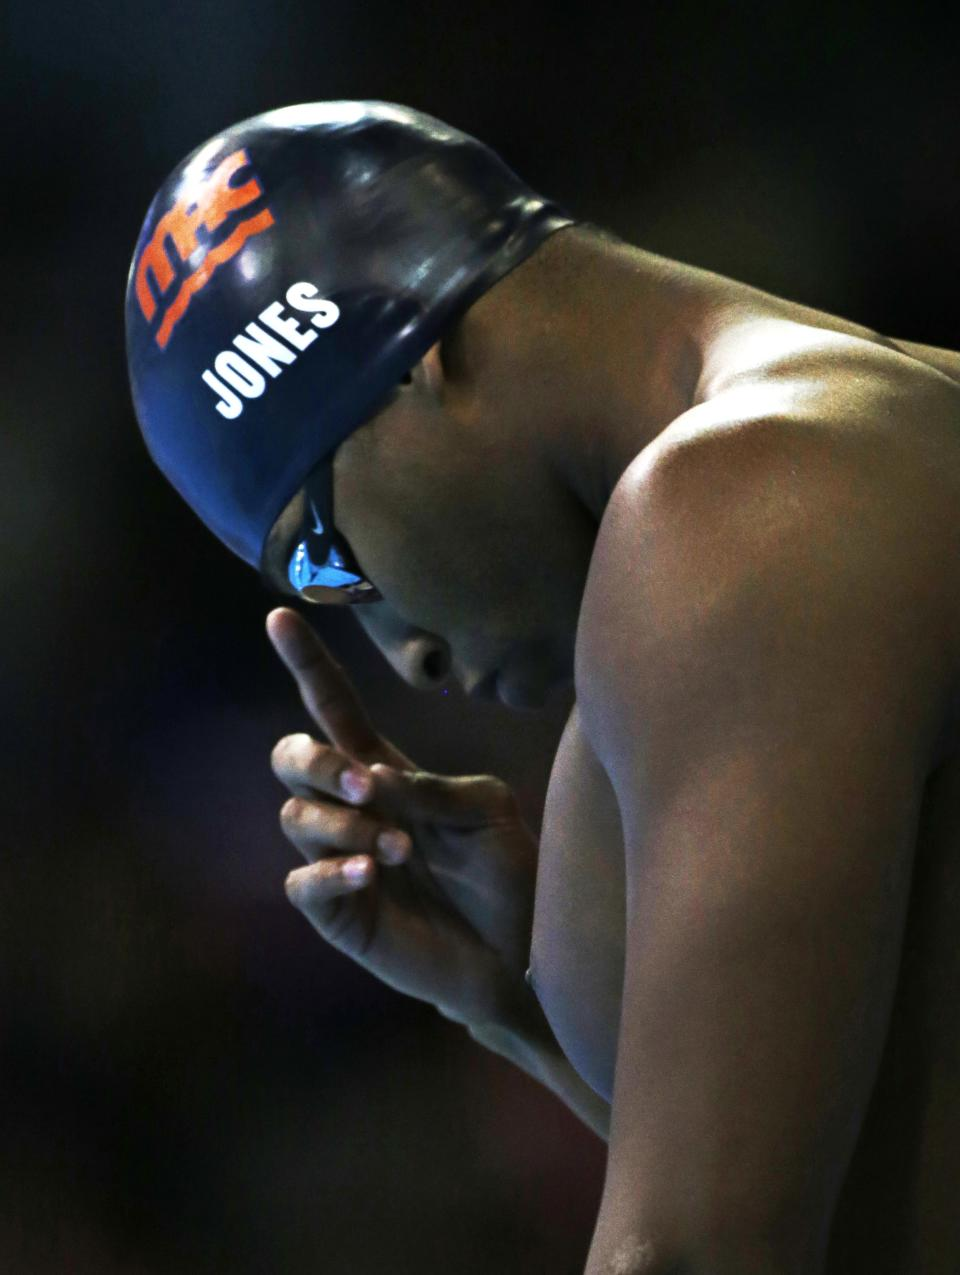 Cullen Jones prepares to swim in the men's 50-meter freestyle final at the U.S. Olympic swimming trials on Sunday, July 1, 2012, in Omaha, Neb. Jones won the final.  (AP Photo/Mark Humphrey)